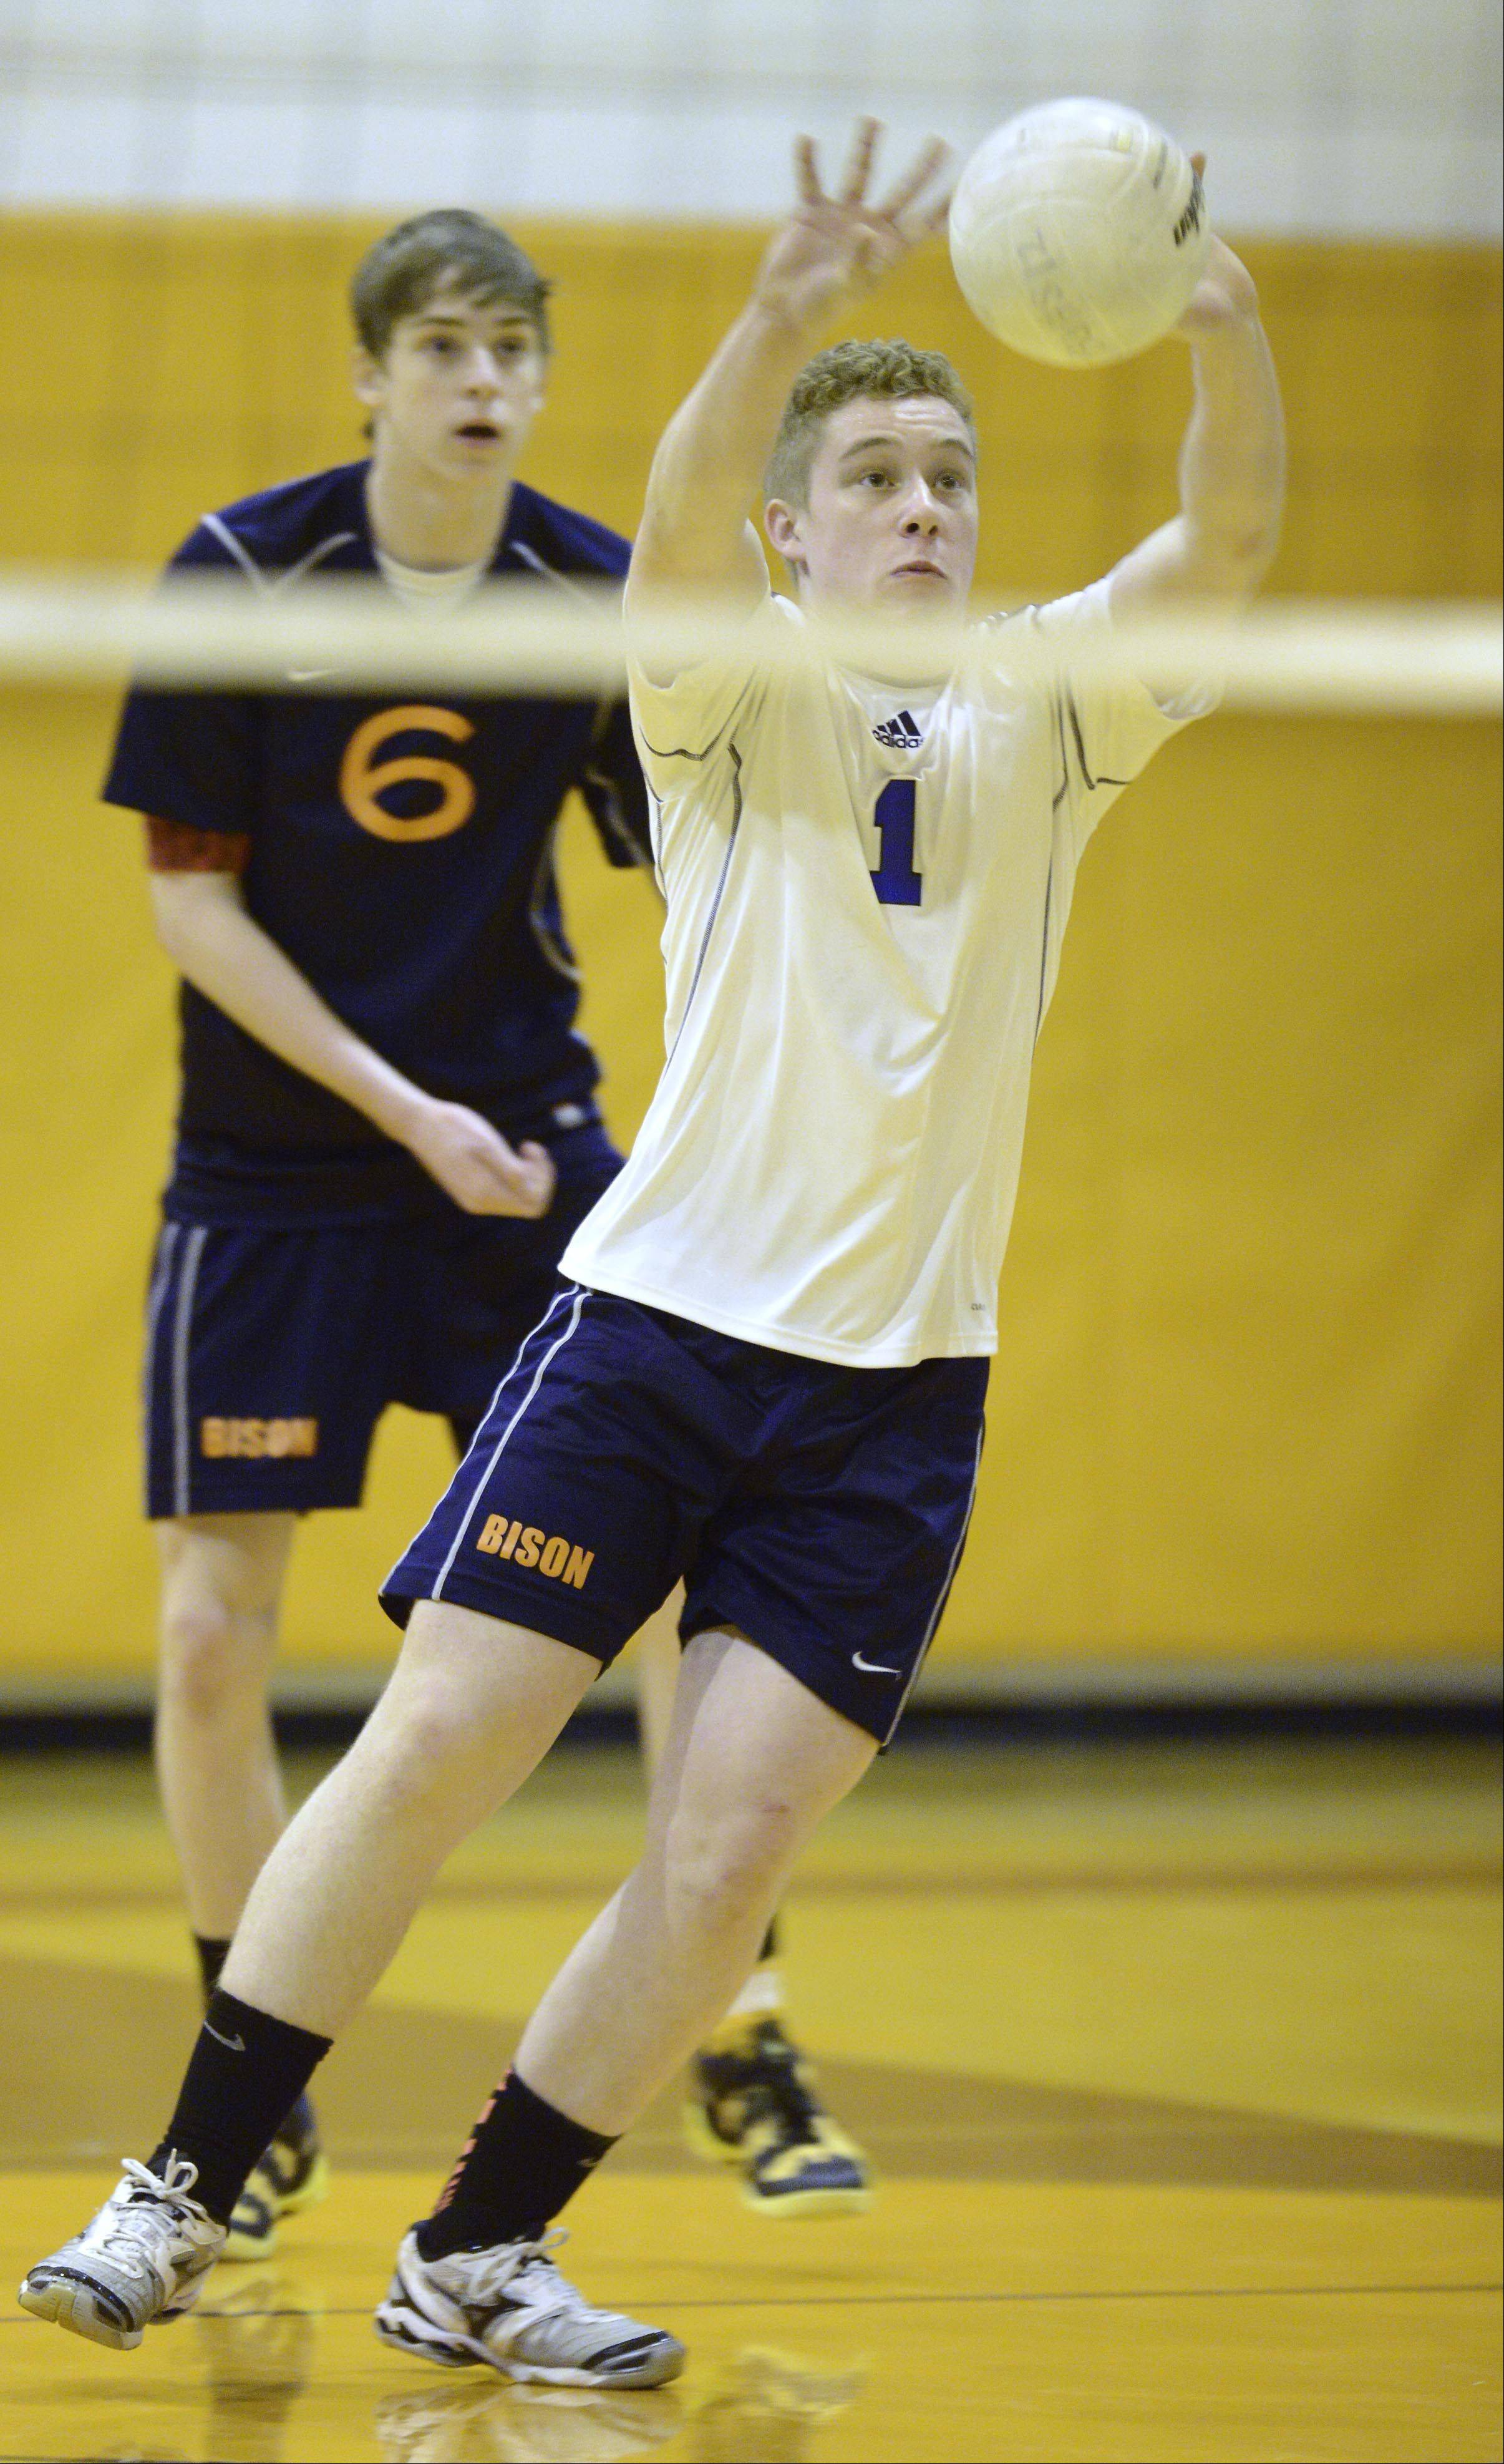 Buffalo Grove's Michael Maley keeps the ball alive during the Buffalo Grove boys volleyball invite Saturday.